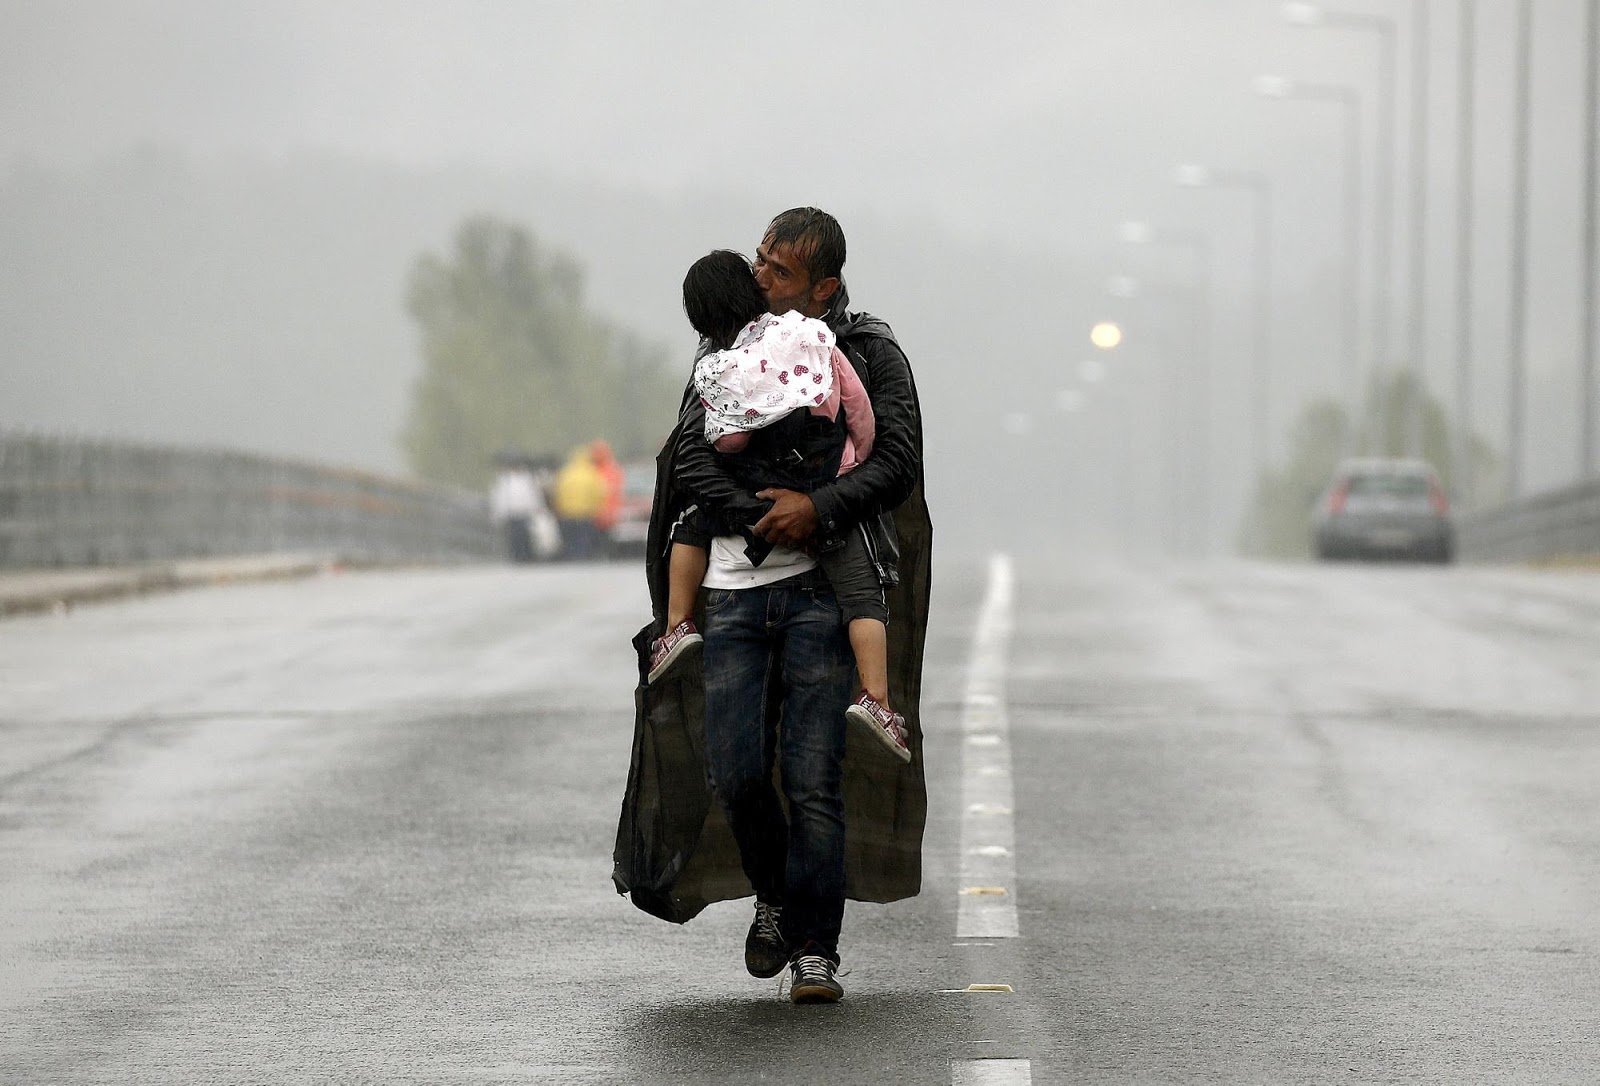 70 Of The Most Touching Photos Taken In 2015 - A Syrian refugee kisses his daughter as he walks through a rainstorm towards Greece's border with Macedonia, in September.